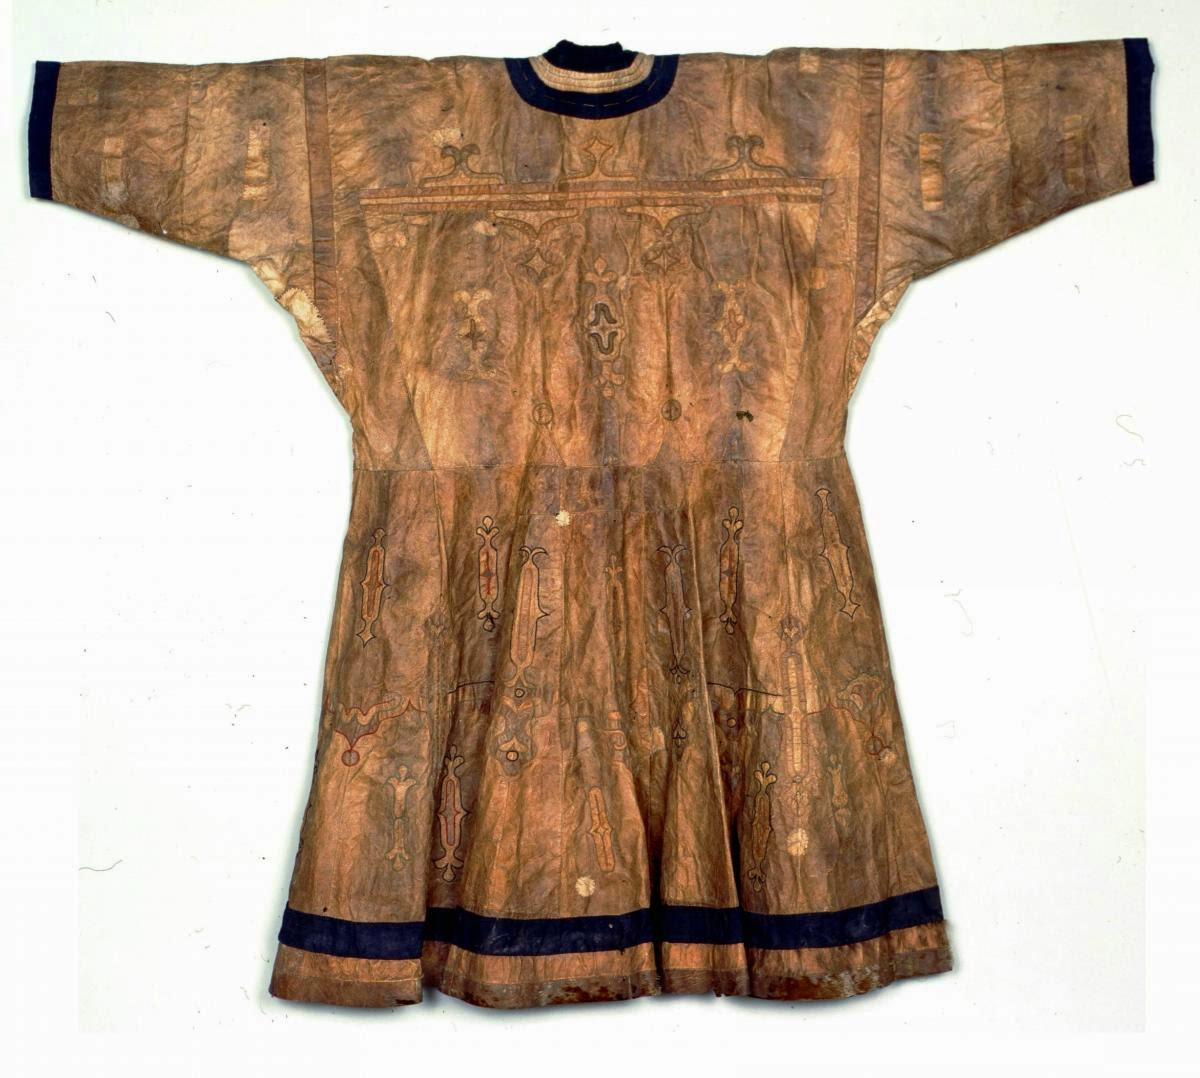 Ainu robe made from salmon skin